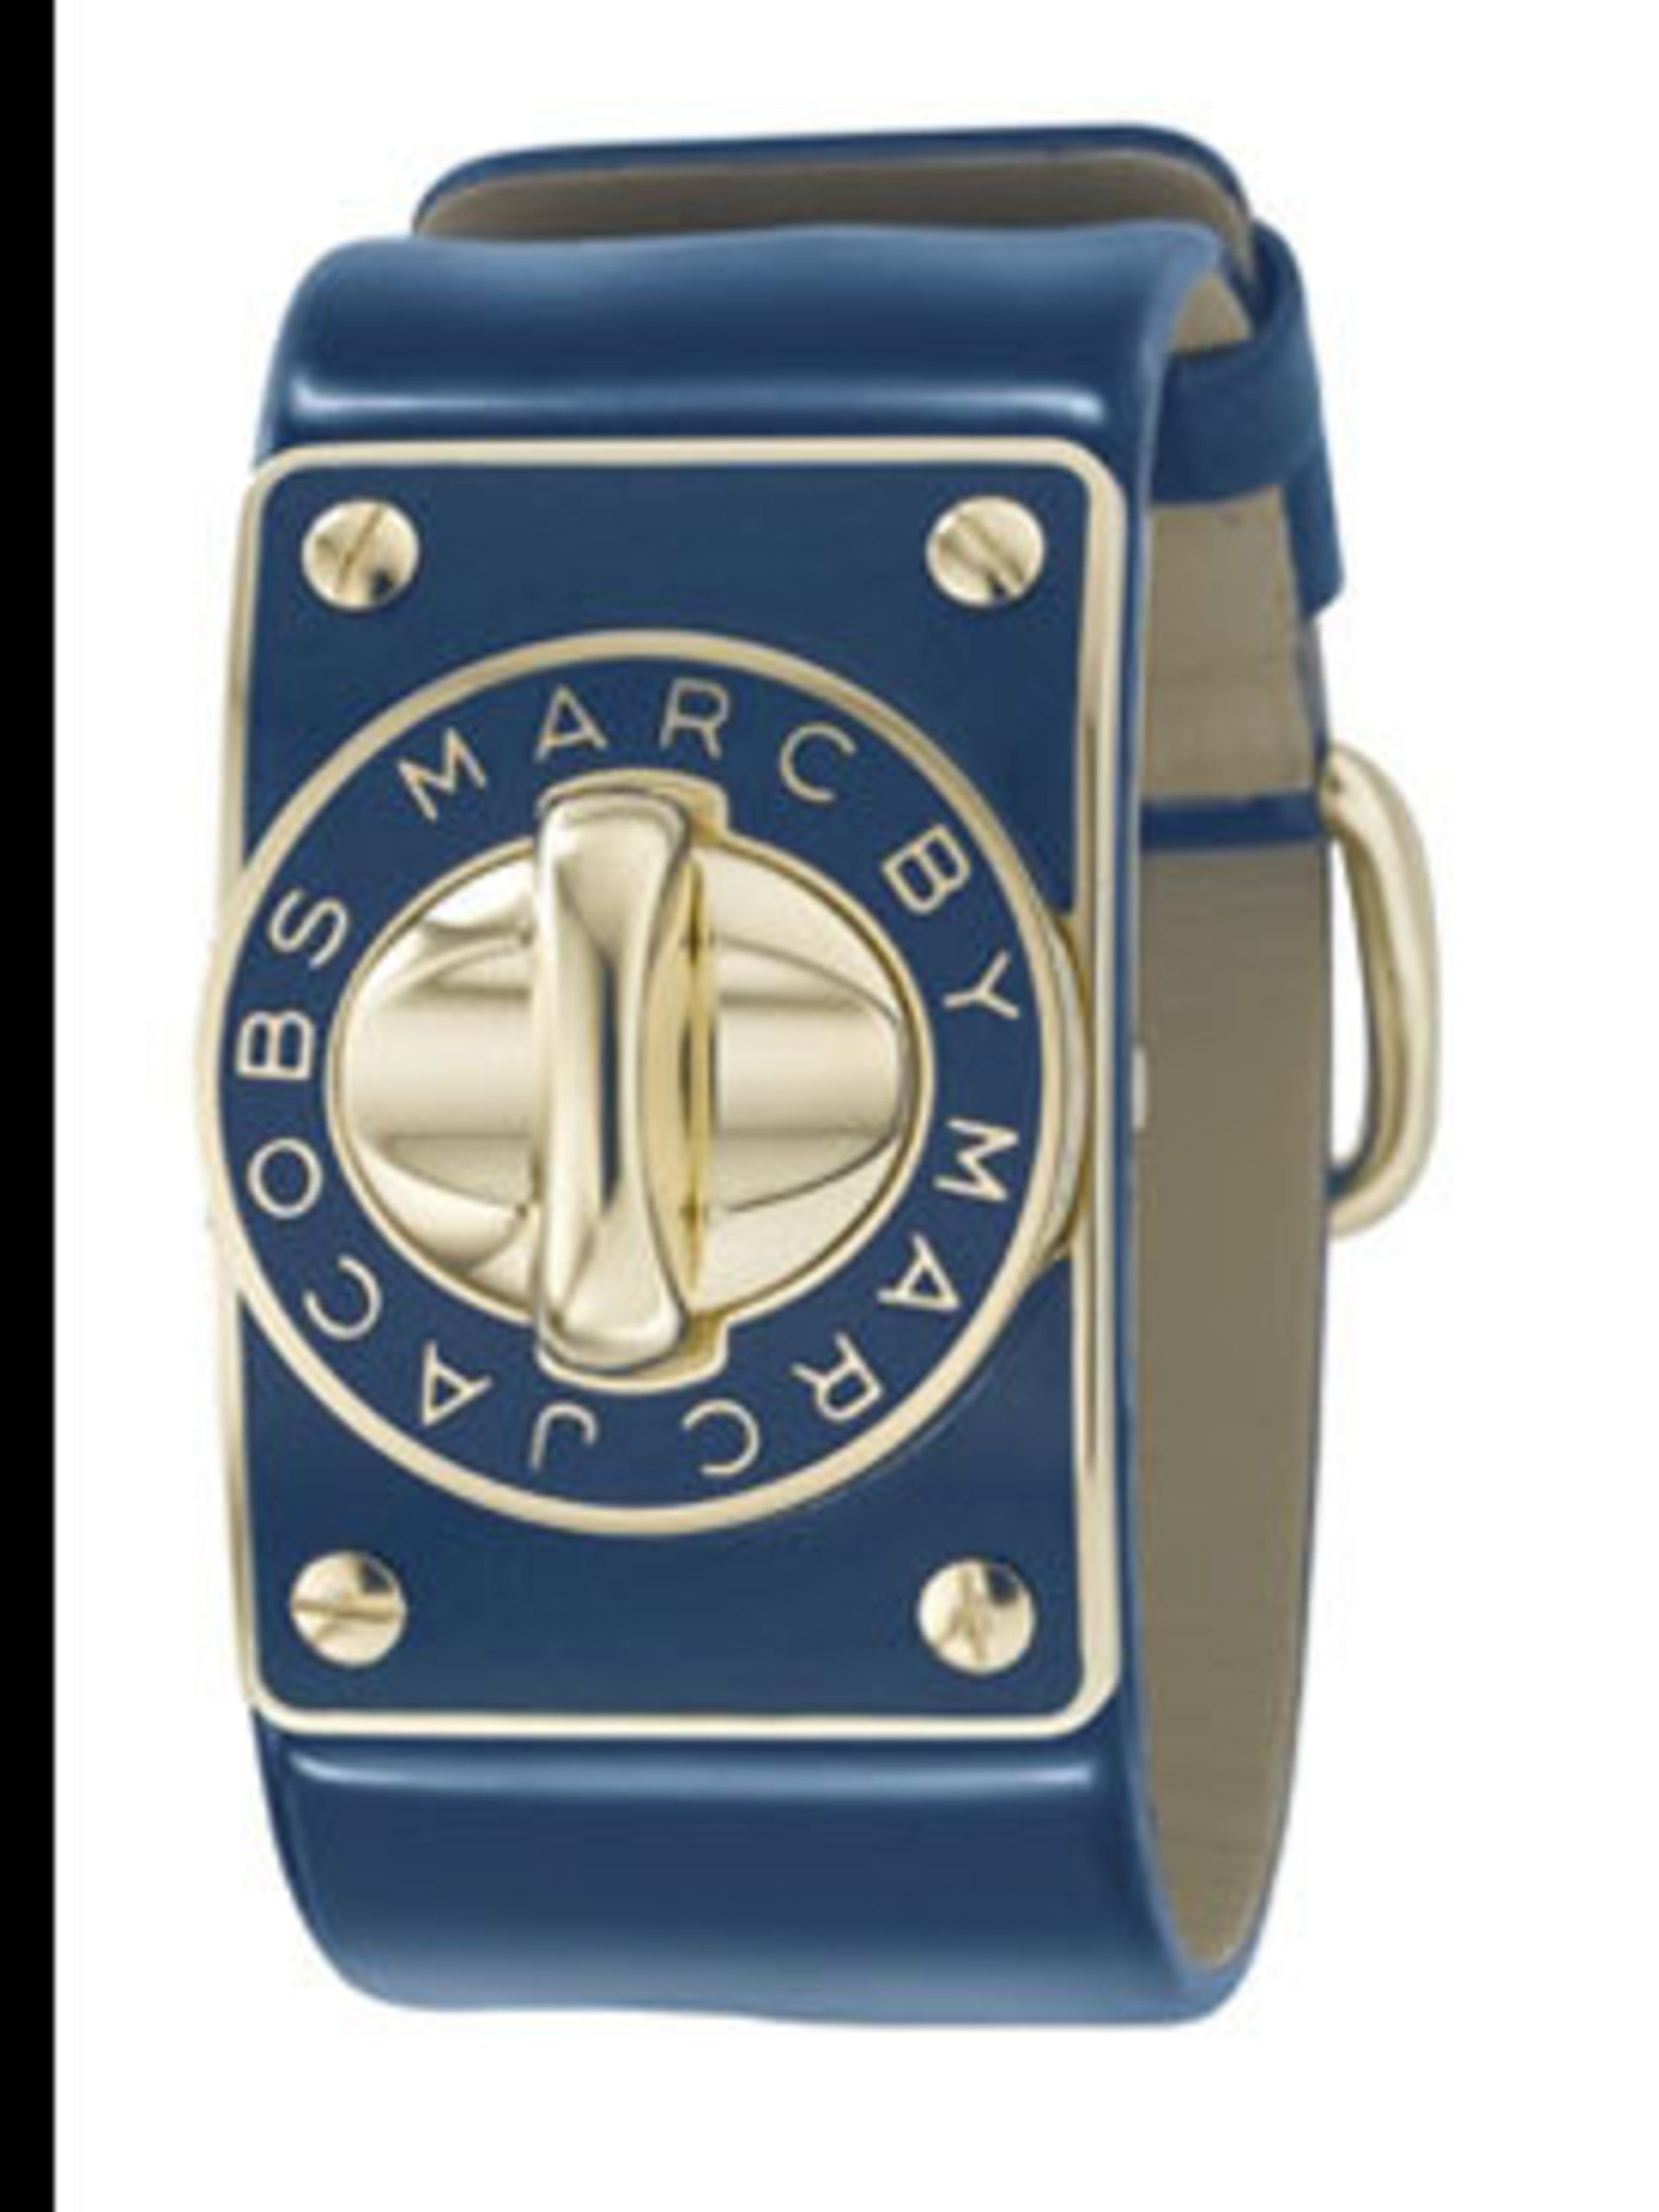 "<p>Watch with blue leather strap, £200, by Marc by Marc Jacobs at <a href=""http://www.goldsmiths.co.uk/product.asp?cid=1&pid=14649"">Goldsmith</a></p>"